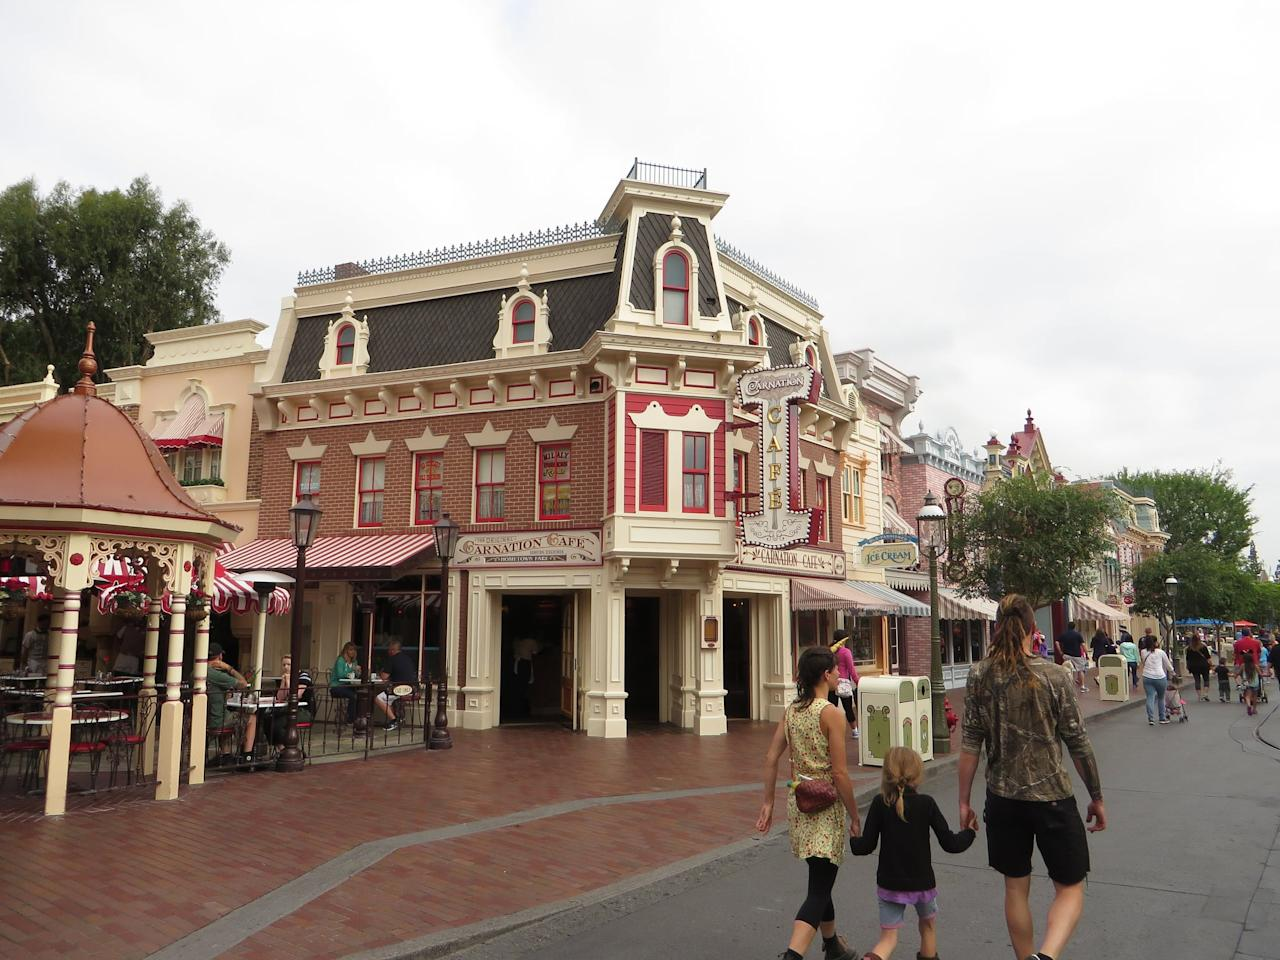 """<p><a href=""""https://disneyland.disney.go.com/dining/disneyland/carnation-cafe/"""" target=""""_blank"""" class=""""ga-track"""" data-ga-category=""""Related"""" data-ga-label=""""https://disneyland.disney.go.com/dining/disneyland/carnation-cafe/"""" data-ga-action=""""In-Line Links"""">Carnation Cafe</a> is a <a href=""""https://www.popsugar.com/smart-living/Disneyland-Bucket-List-39703040"""" class=""""ga-track"""" data-ga-category=""""Related"""" data-ga-label=""""https://www.popsugar.com/smart-living/Disneyland-Bucket-List-39703040"""" data-ga-action=""""In-Line Links"""">Disneyland classic</a> that serves up some of Walt's favorites, and we cannot imagine a trip to Disneyland that doesn't include at least one stop here. Because California weather is typically nice, your family might want to sit outside on the patio and enjoy the sights and sounds of the park while you wait for your meal to arrive. We highly suggest going here for lunch to get the loaded baked potato soup and fried pickle spears!</p> <p><strong>Location:</strong> Disneyland Park, Main Street U.S.A.<br> <strong>Dining Experience:</strong> Table service<br> <strong>Reservations:</strong> Highly recommended</p>"""